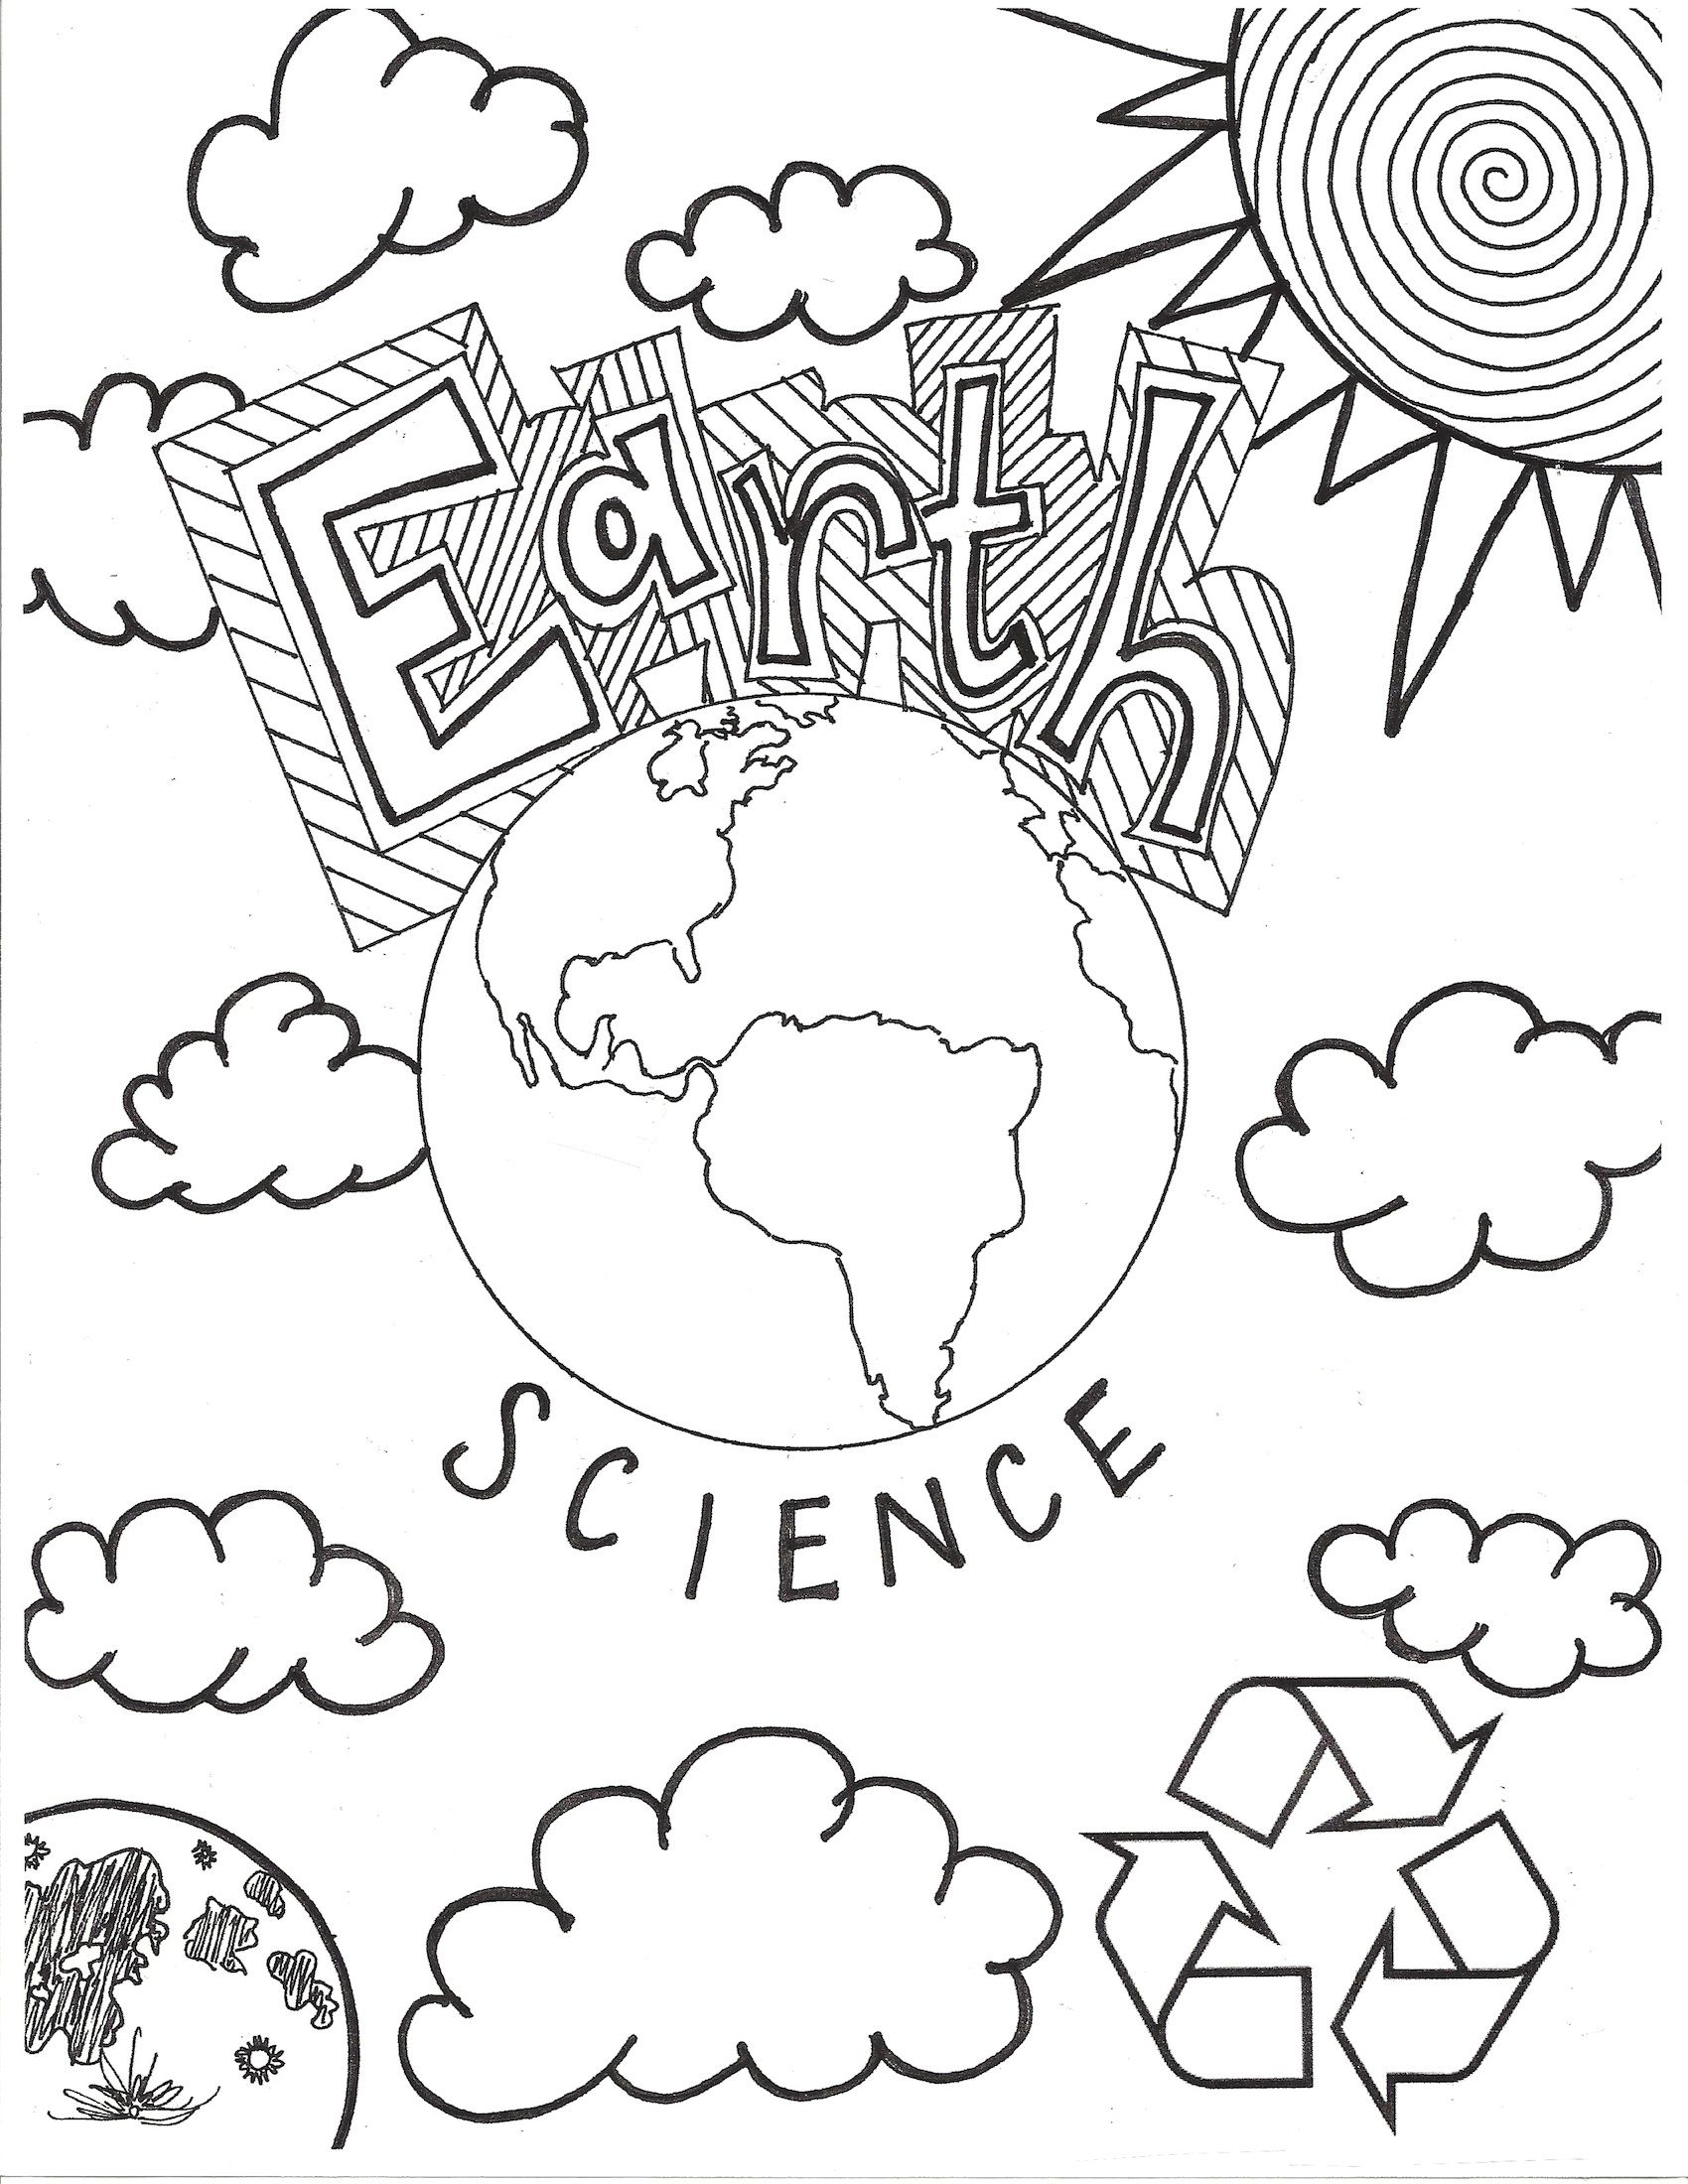 plant coloring pages science experiments - photo#27